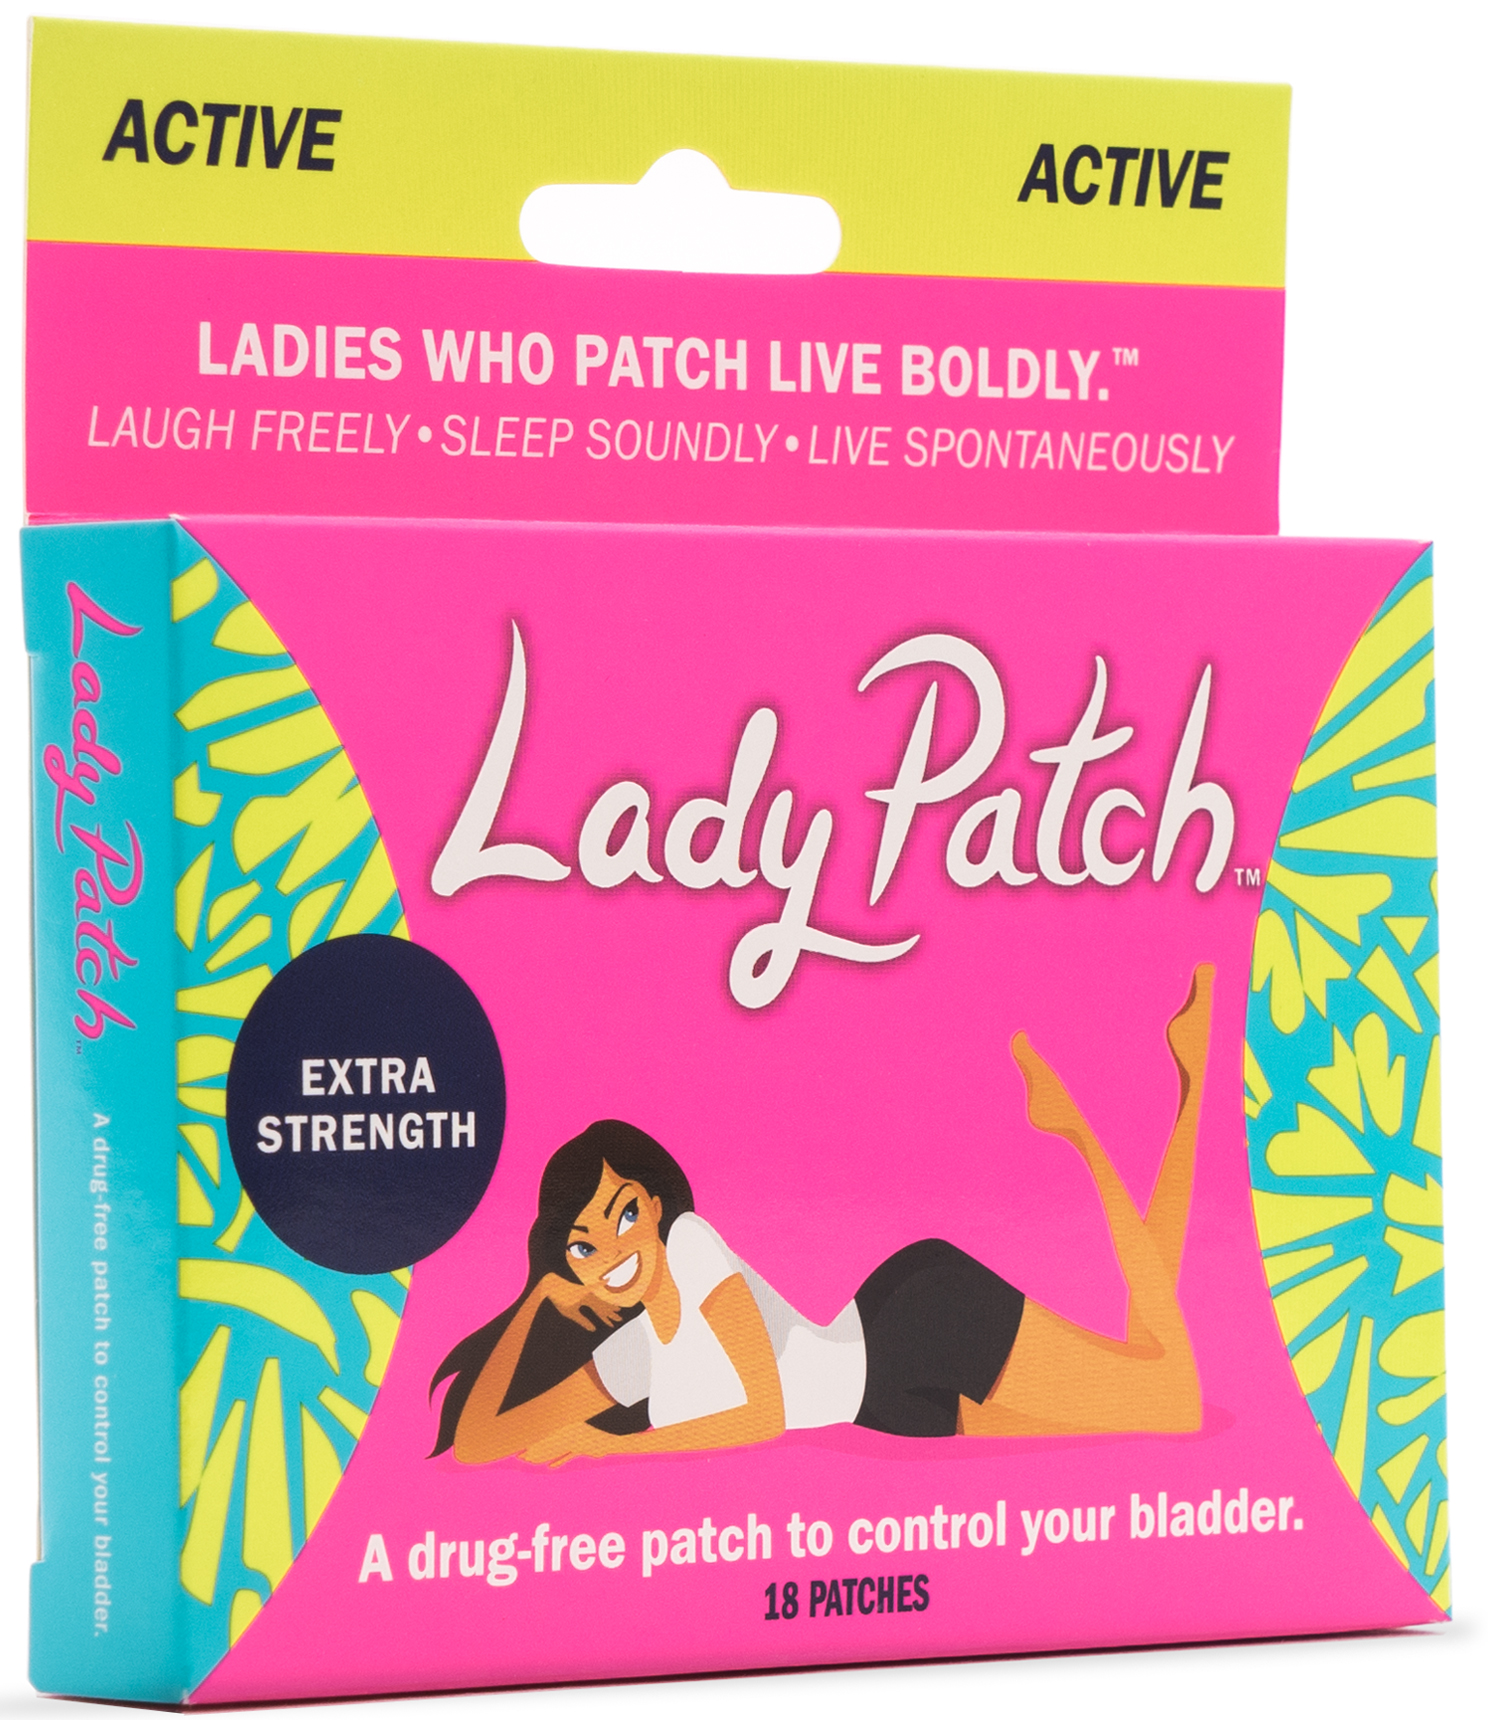 Lady Patch™ Active